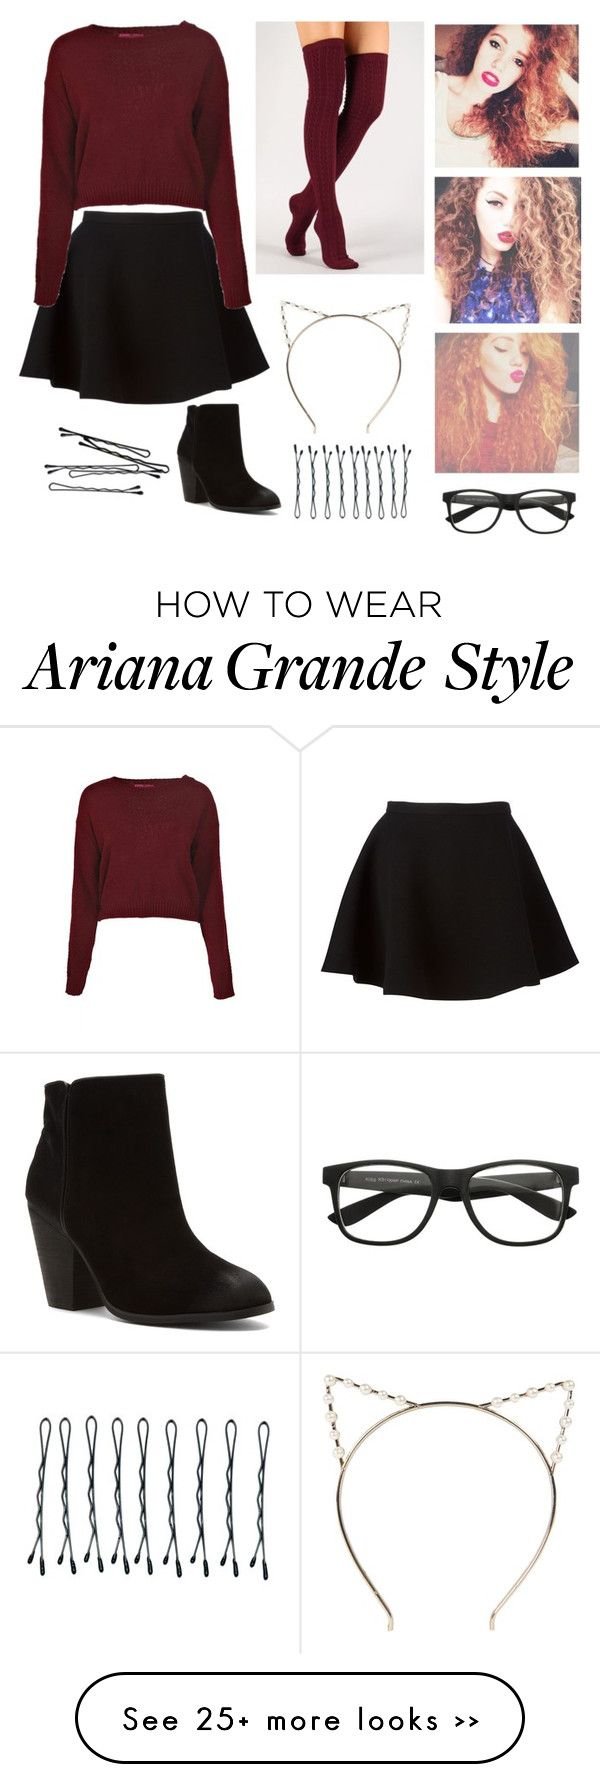 """Mahogany Lox style"" by gmnarayan on Polyvore"